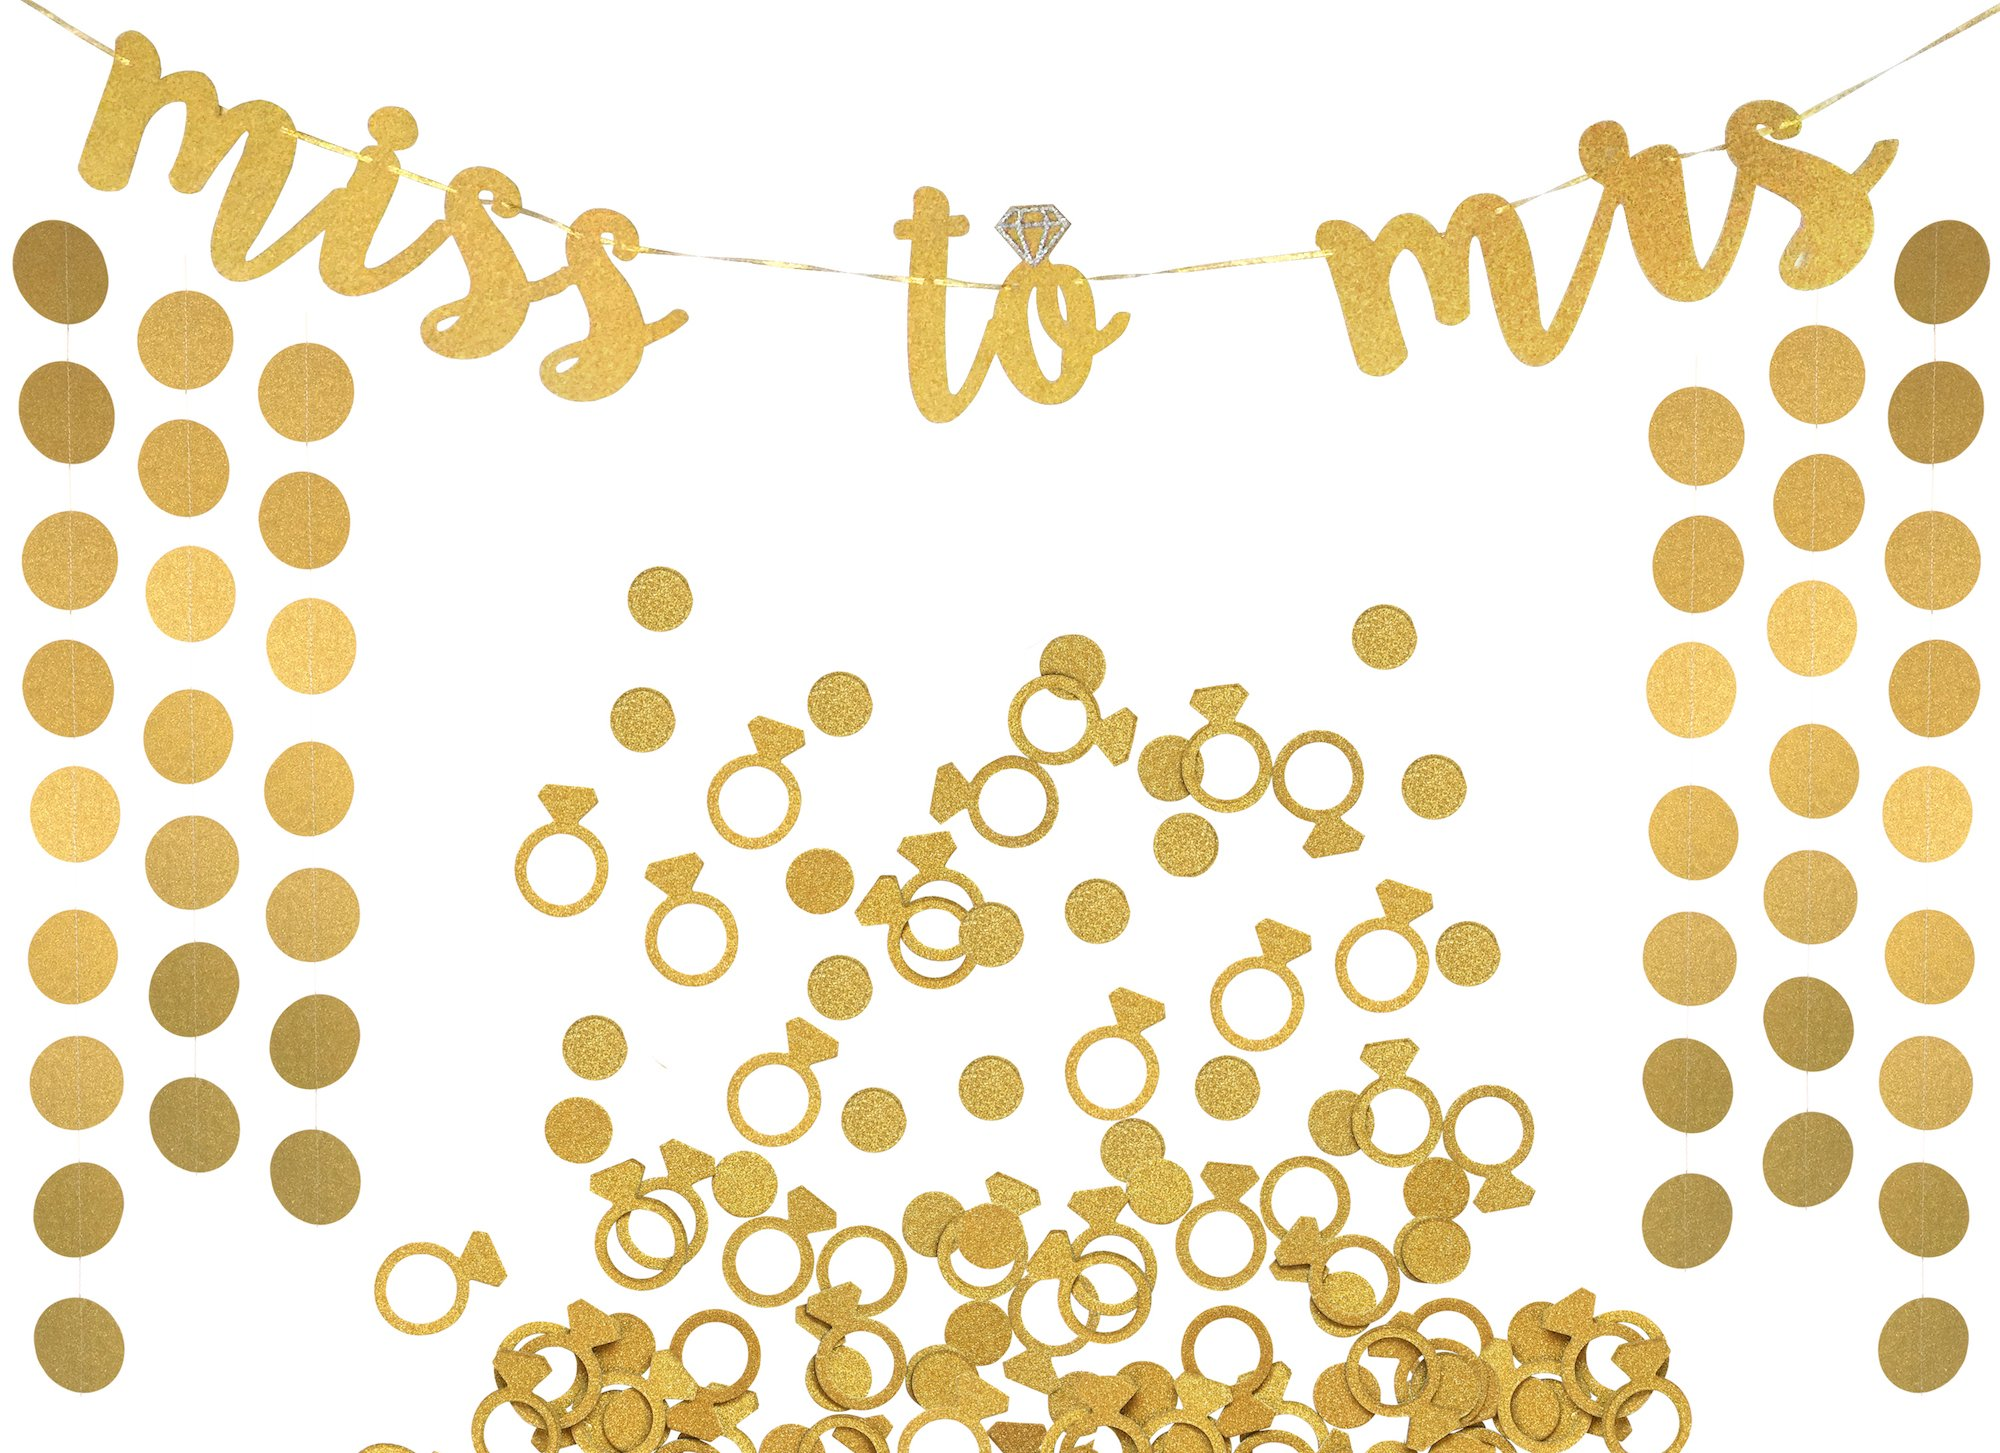 Miss to Mrs Banner, Garland & Confetti Set - Bachelorette, Engagement or Wedding Party Decorations - Sparkly Gold Banner, Circle Garland & Super Fun Diamond Ring & Circle Confetti